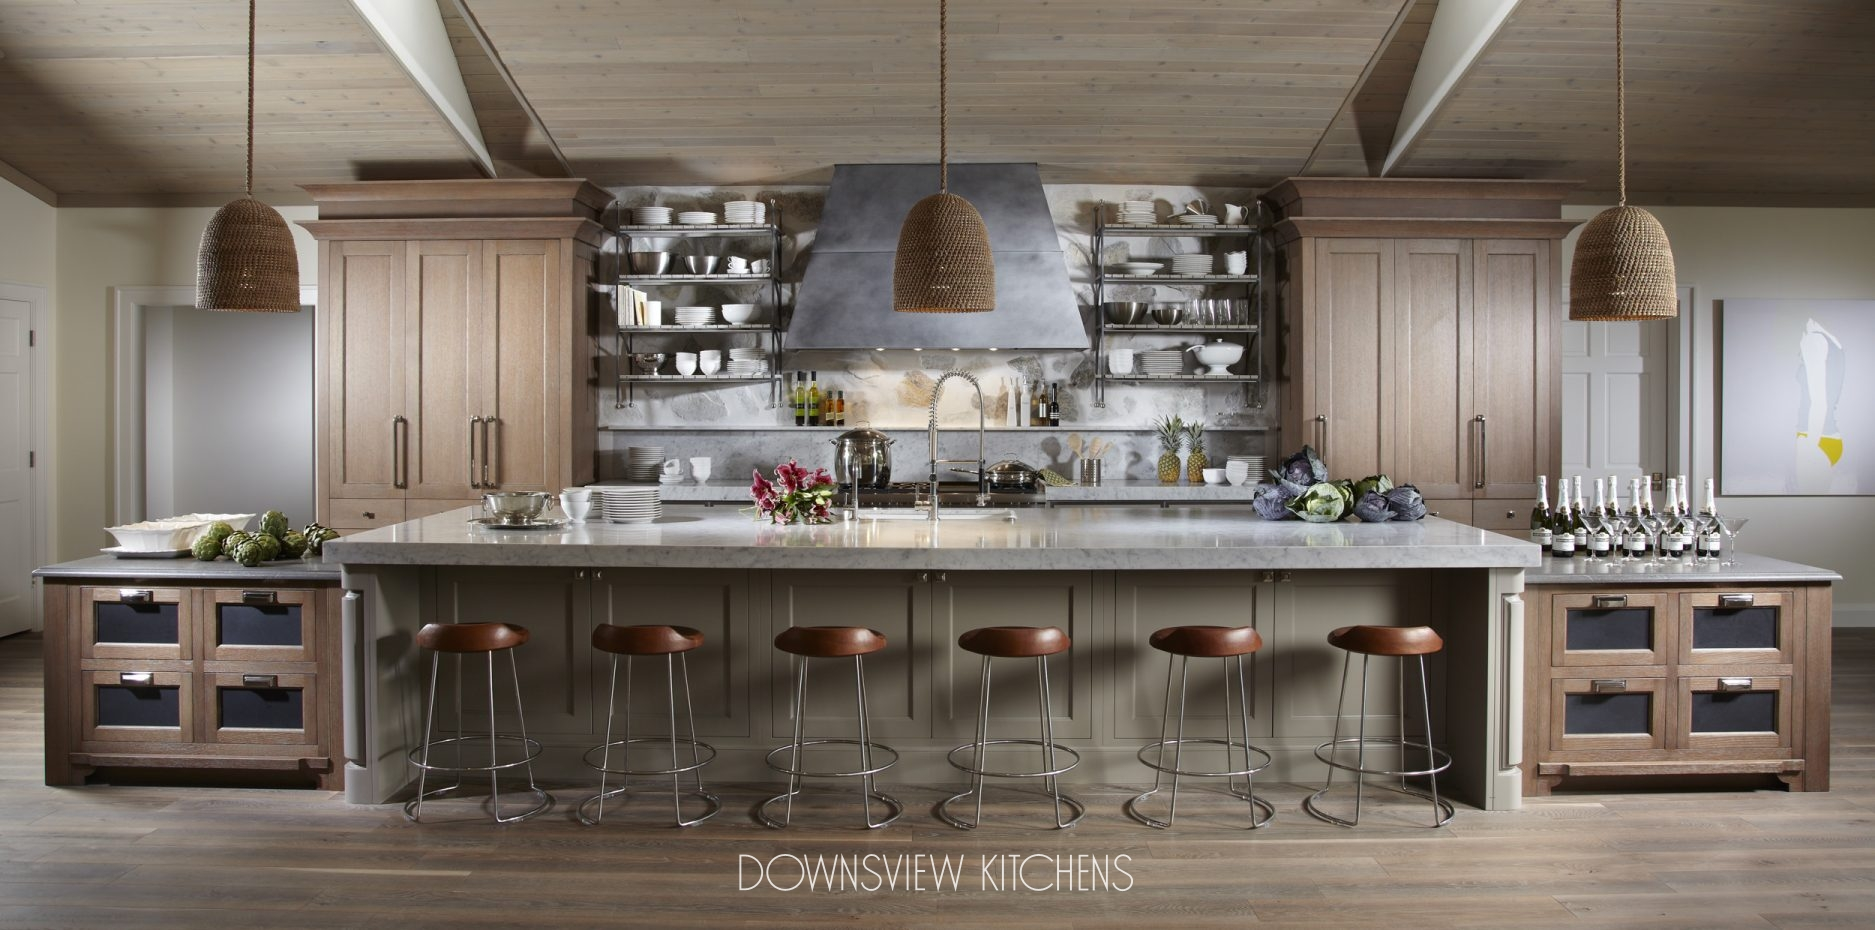 A GATHERING PLACE - Downsview Kitchens and Fine Custom Cabinetry ...